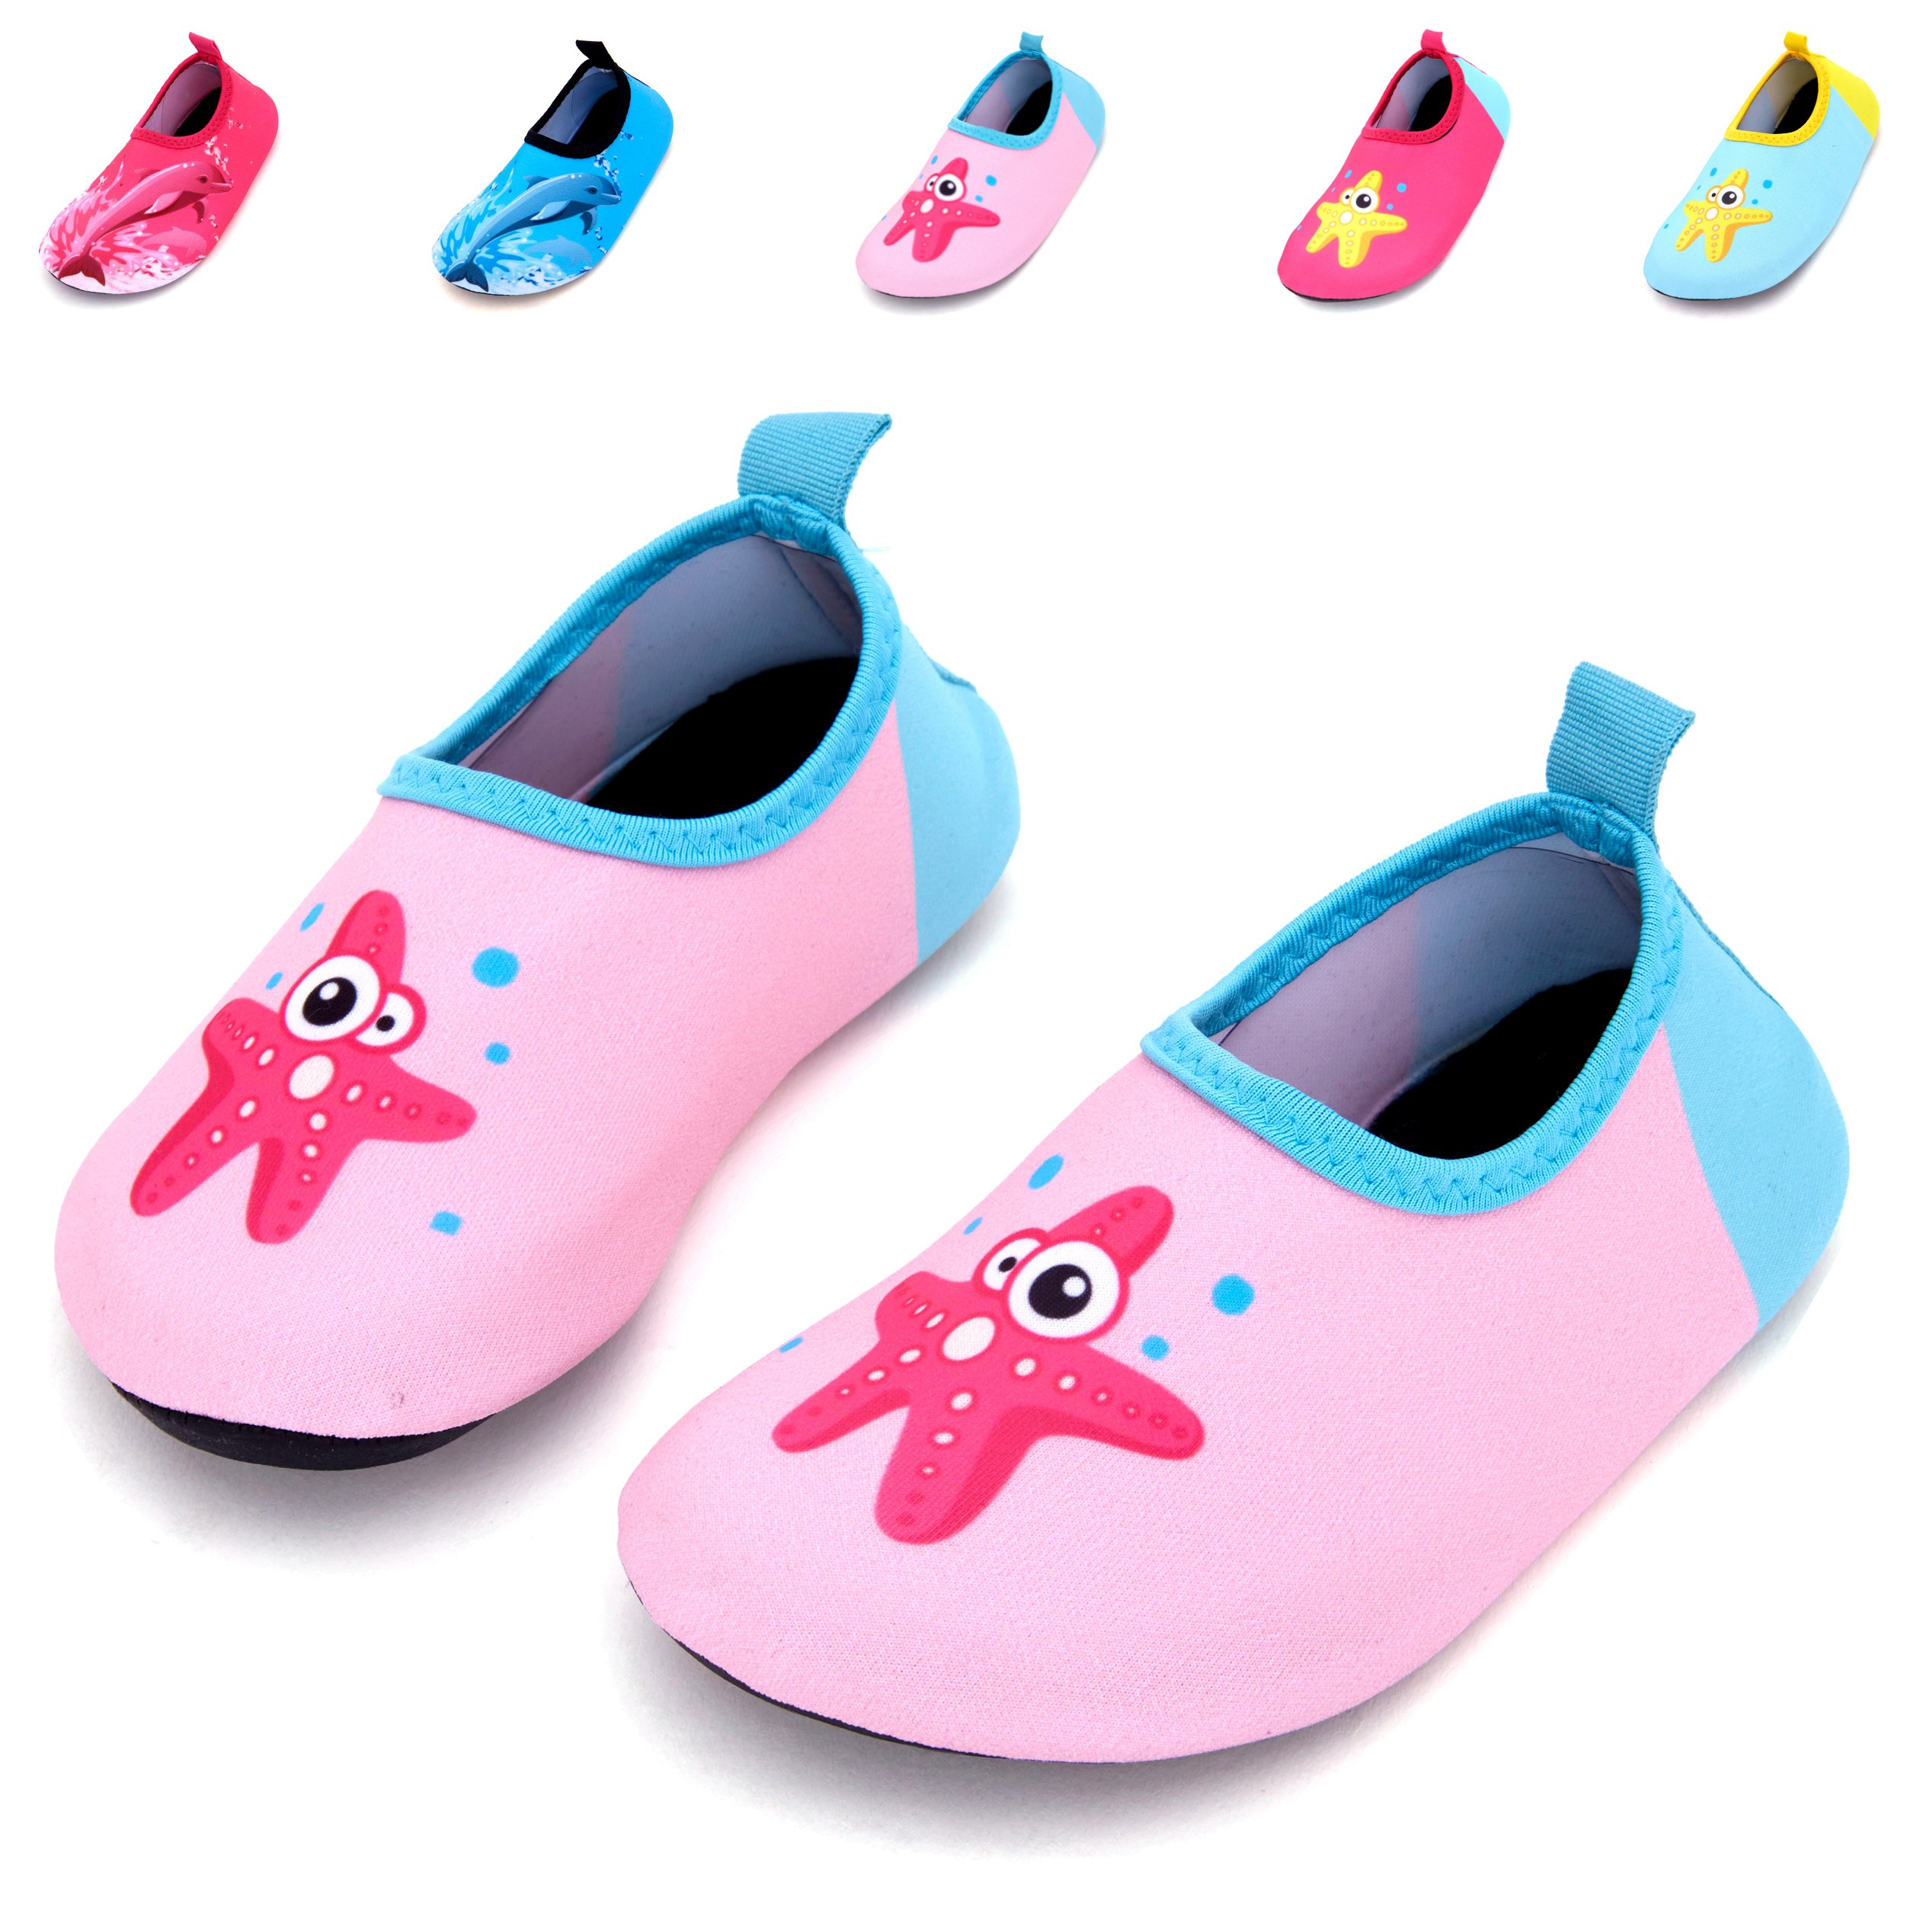 Giotto Kids Swim Water Shoes Quick Dry Non-Slip for Boys & Girls, Pink, 26-27